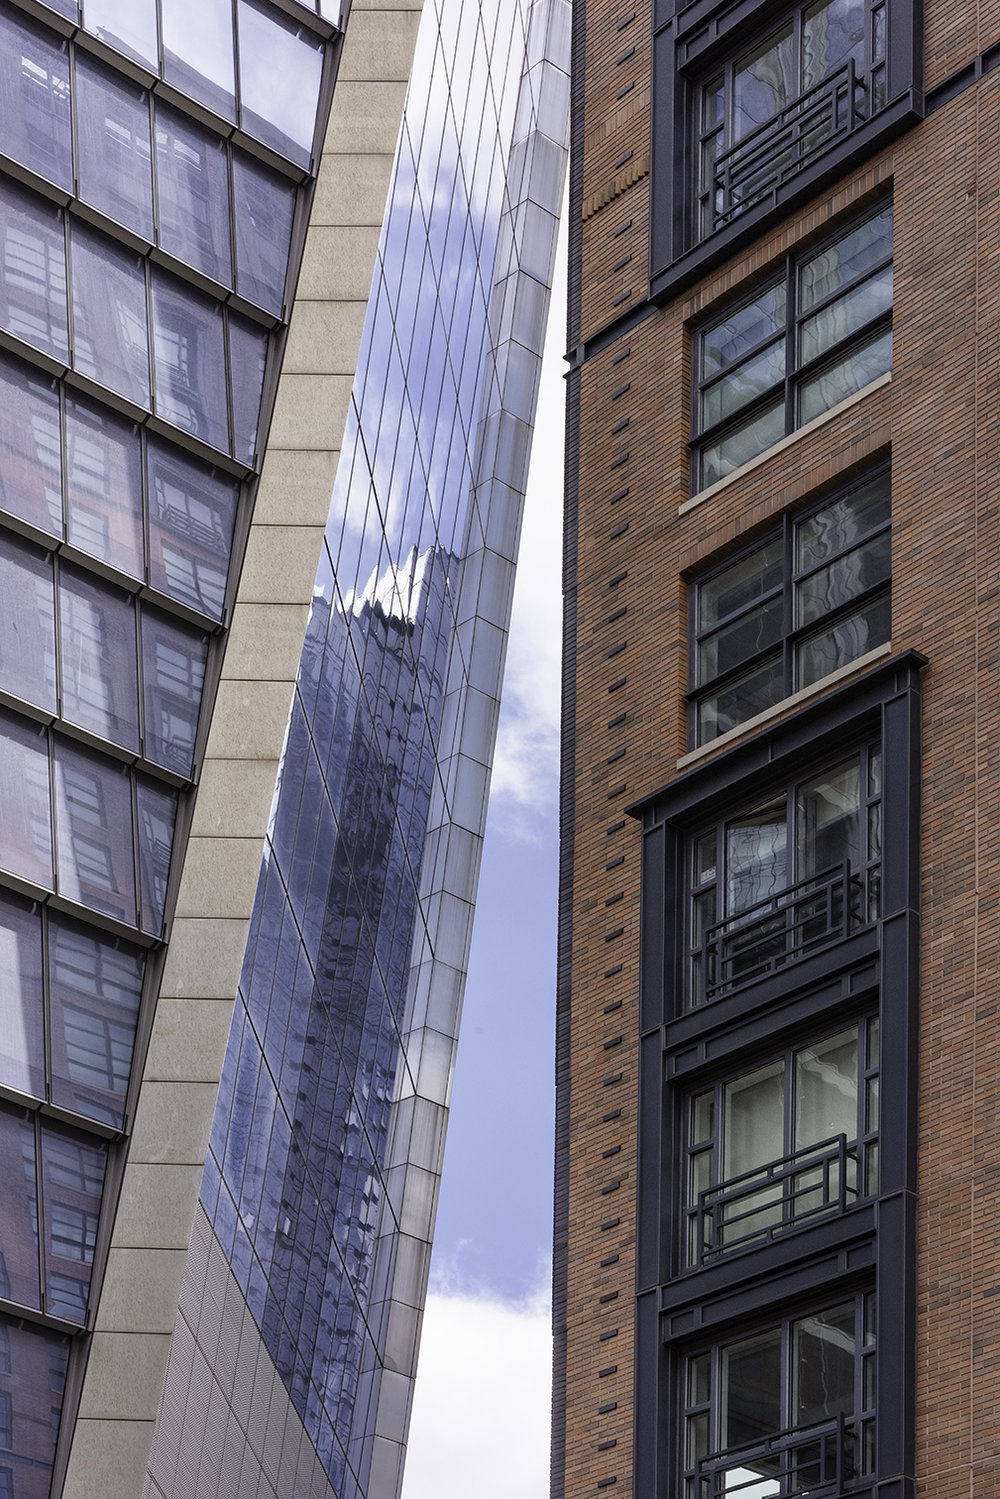 NYC Architecture_Hudson Yards_Persepectives Bitch_WEBSITE_0170.jpg